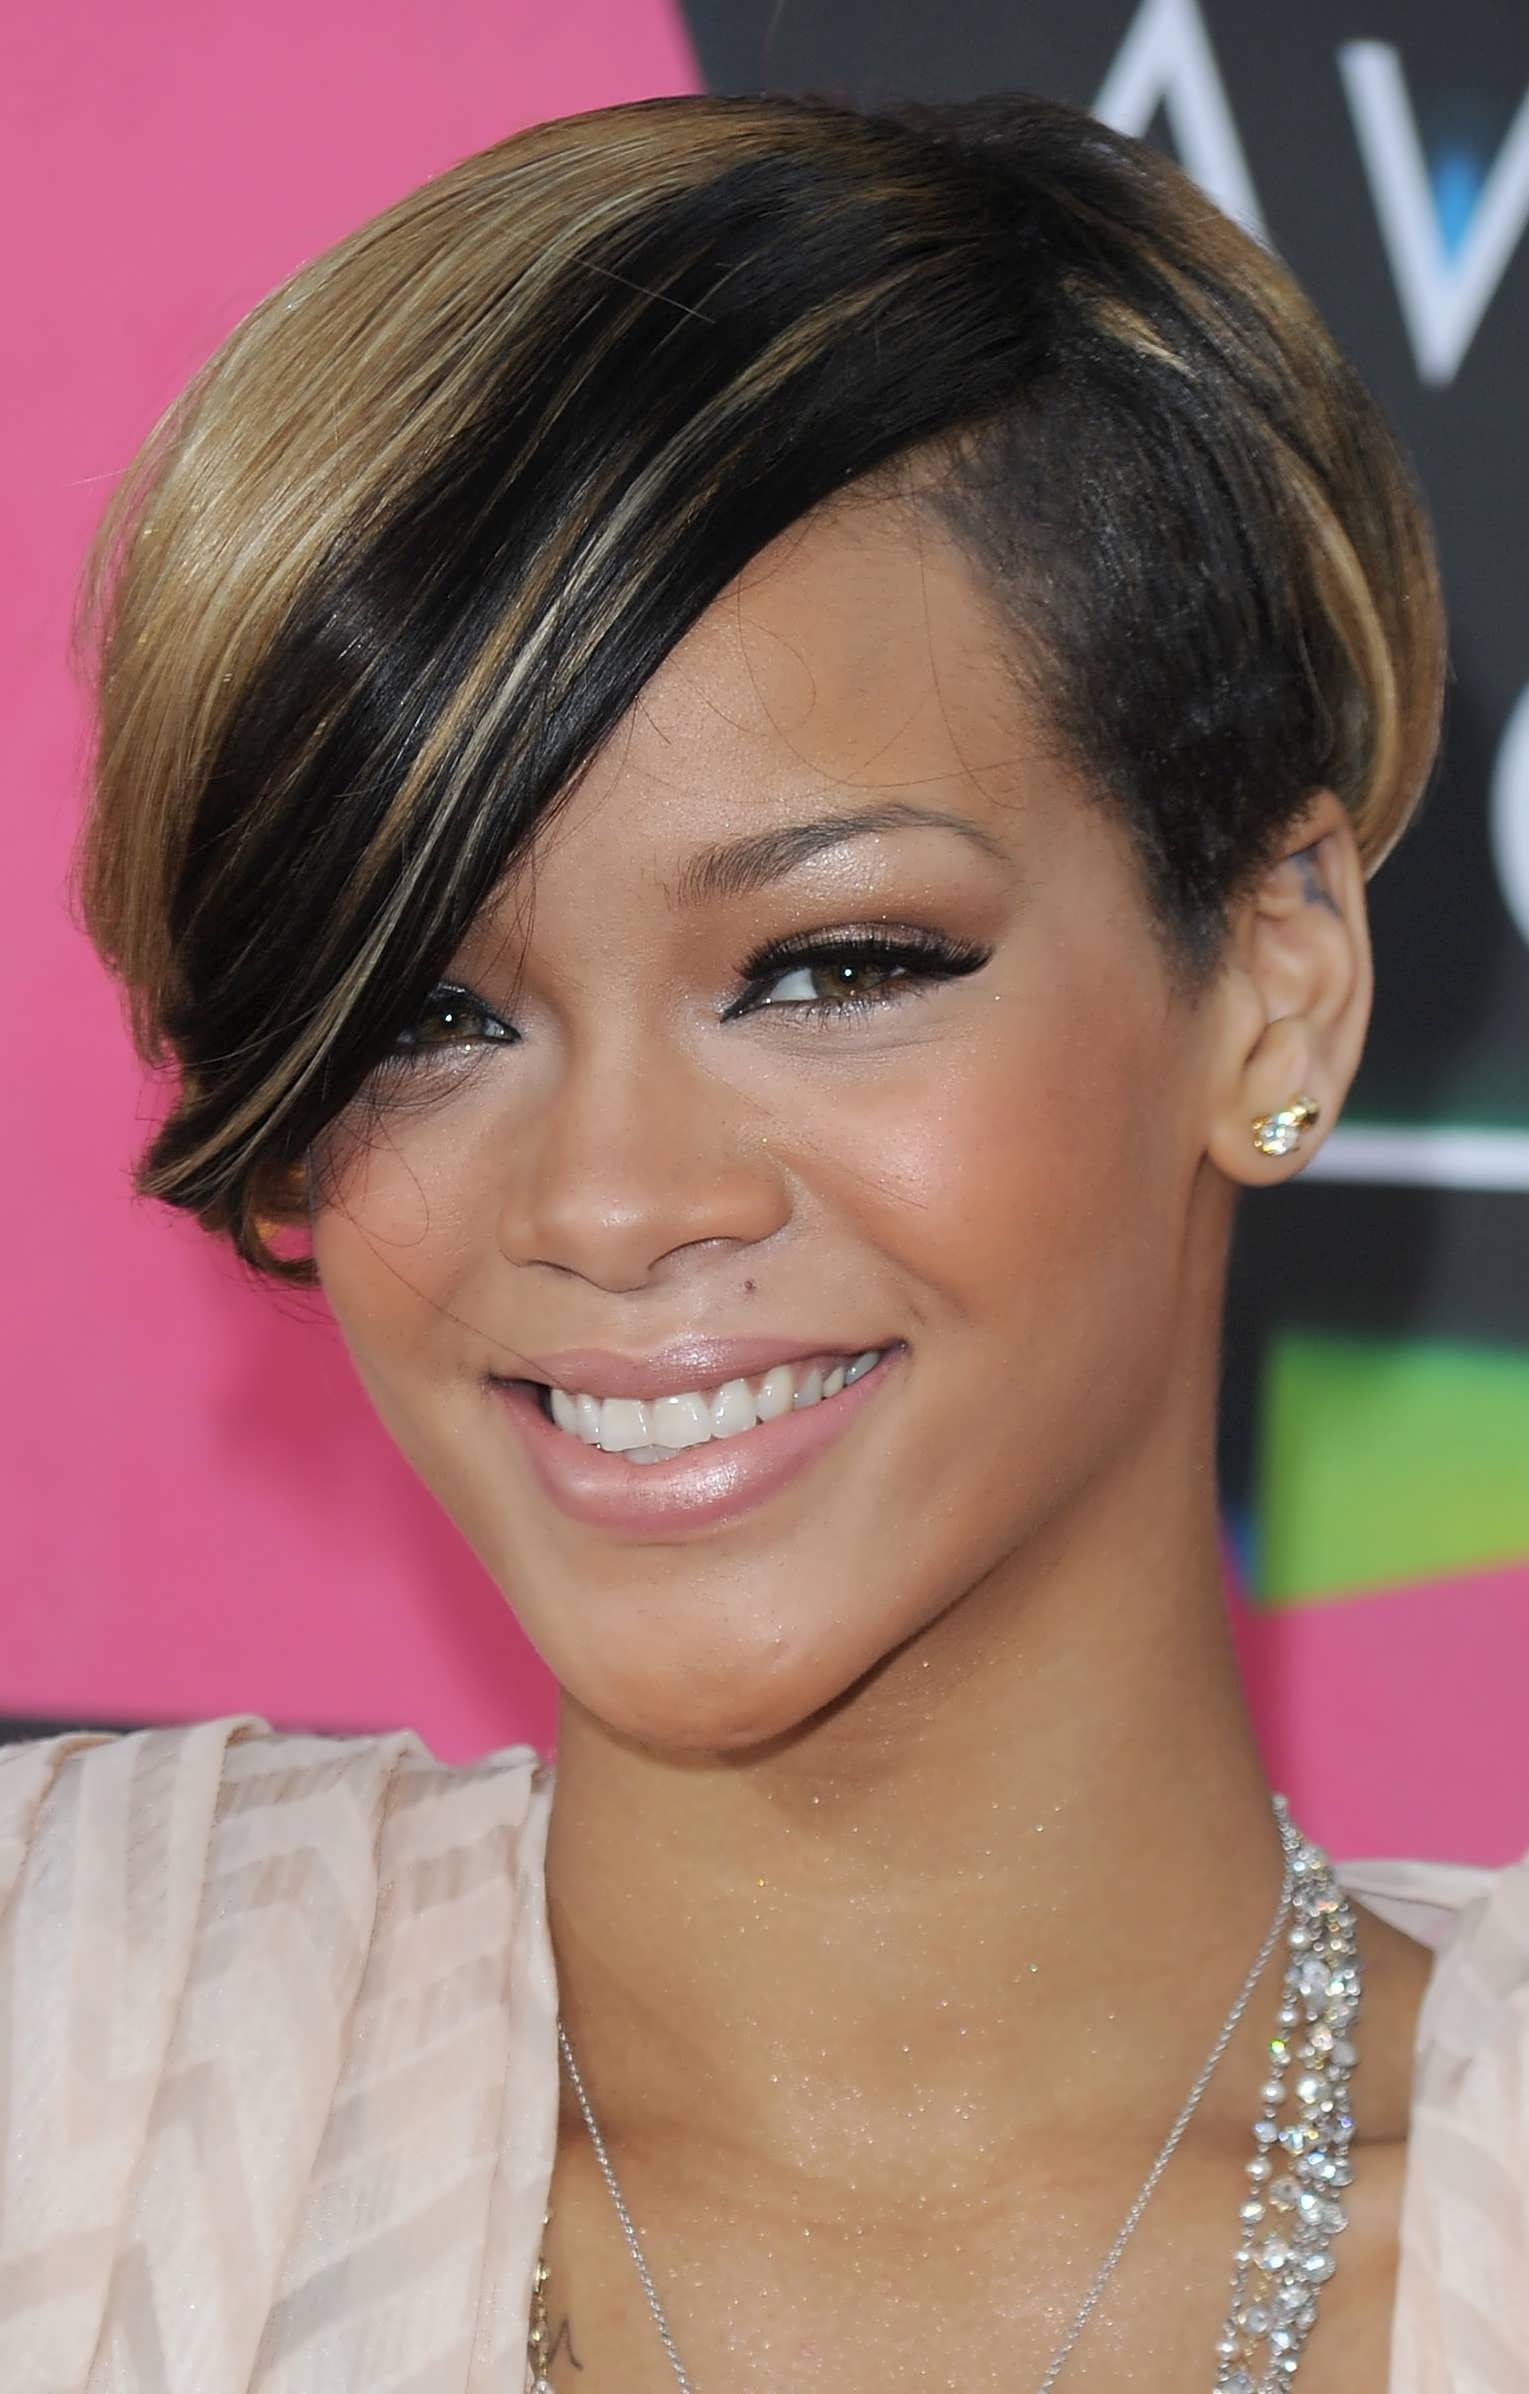 Tremendous 50 Best Short Haircuts For African American Women 2017 Cruckers Short Hairstyles For Black Women Fulllsitofus